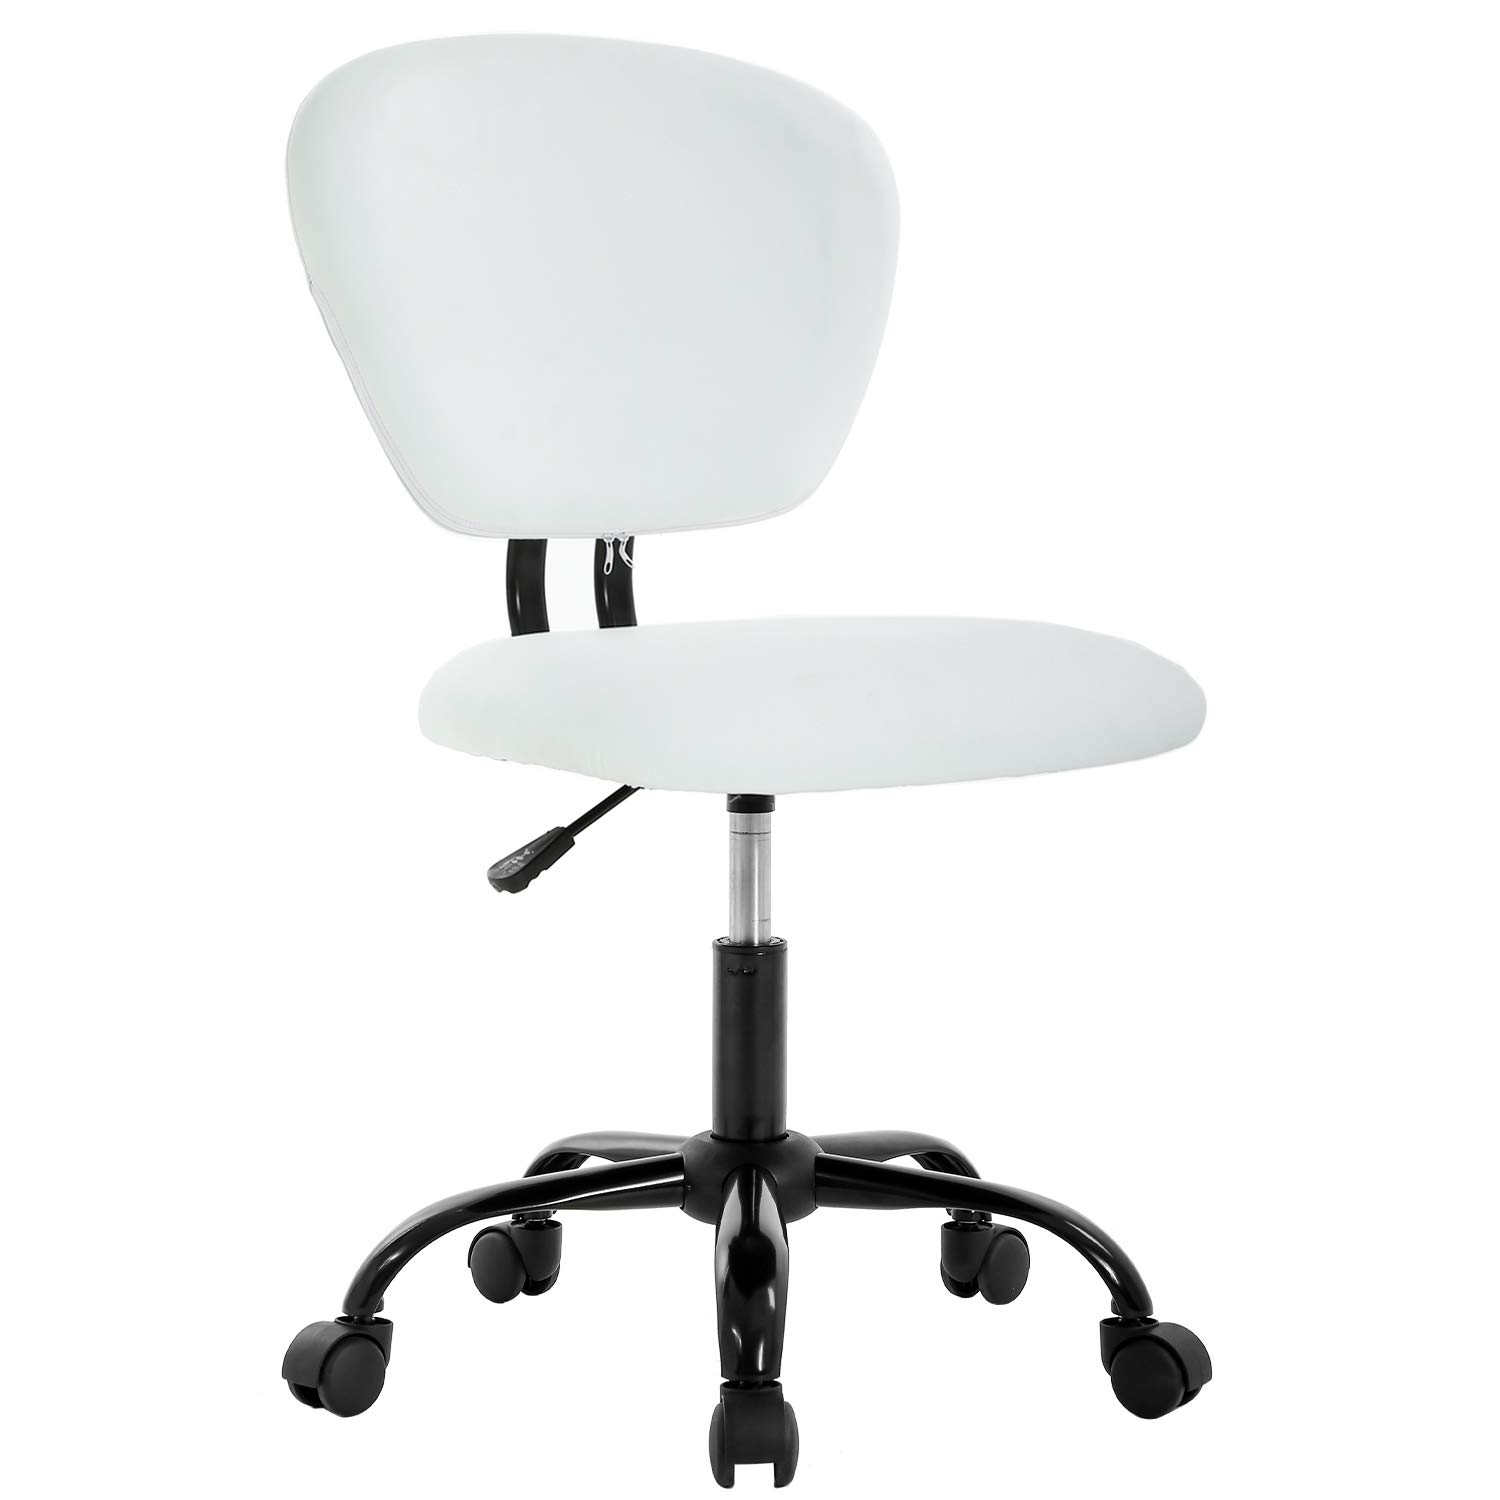 Office Chair Ergonomic Desk Chair PU Leather Computer Chair Task Rolling Swivel Stool Mid Back Executive Chair with Lumbar Support for Women&Men, White by BestOffice